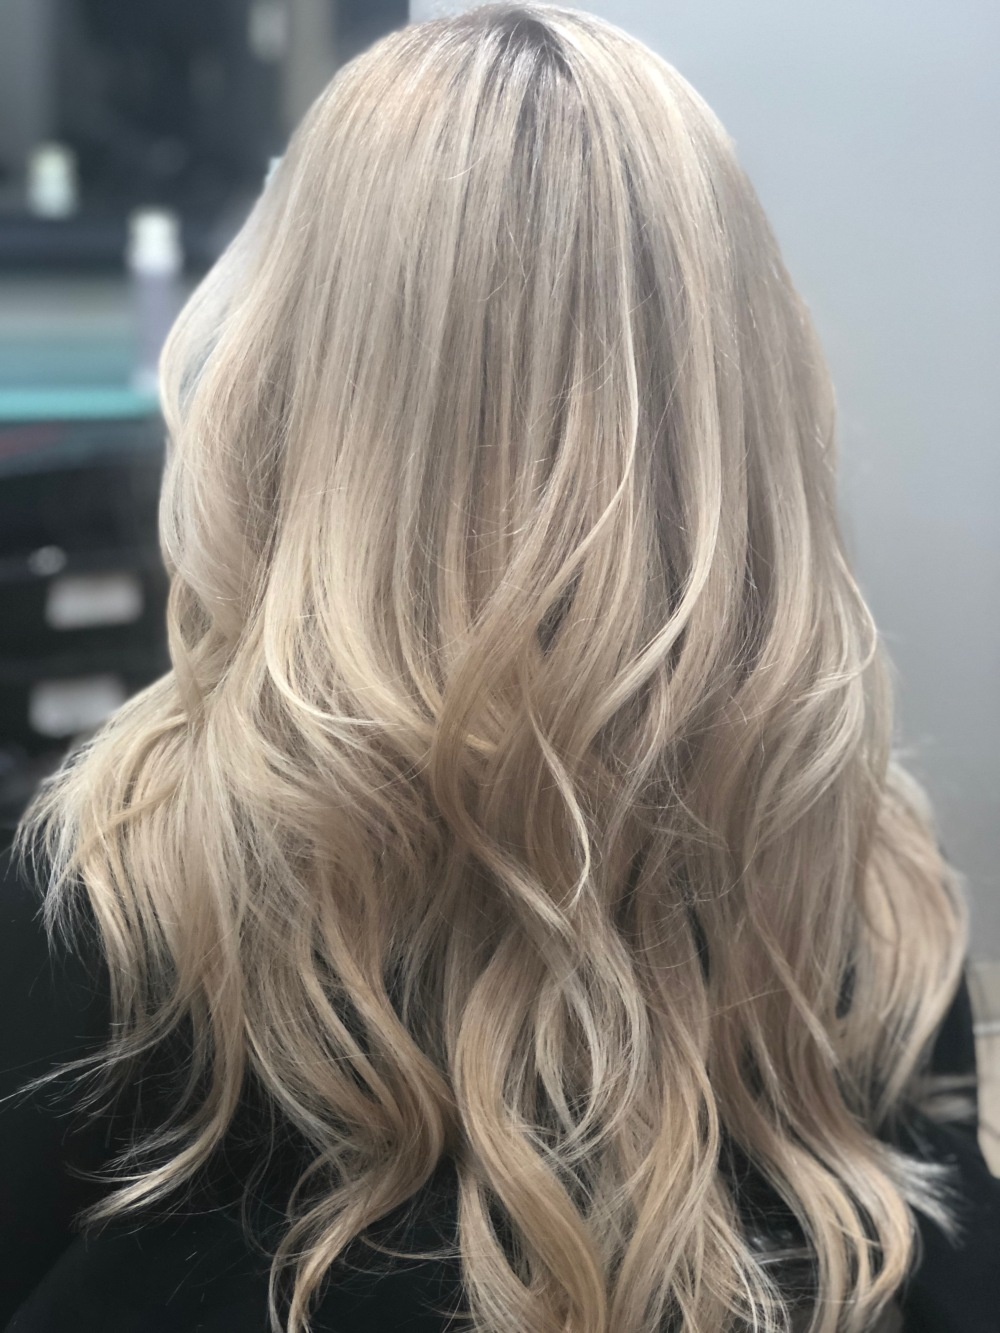 Long hair balayage